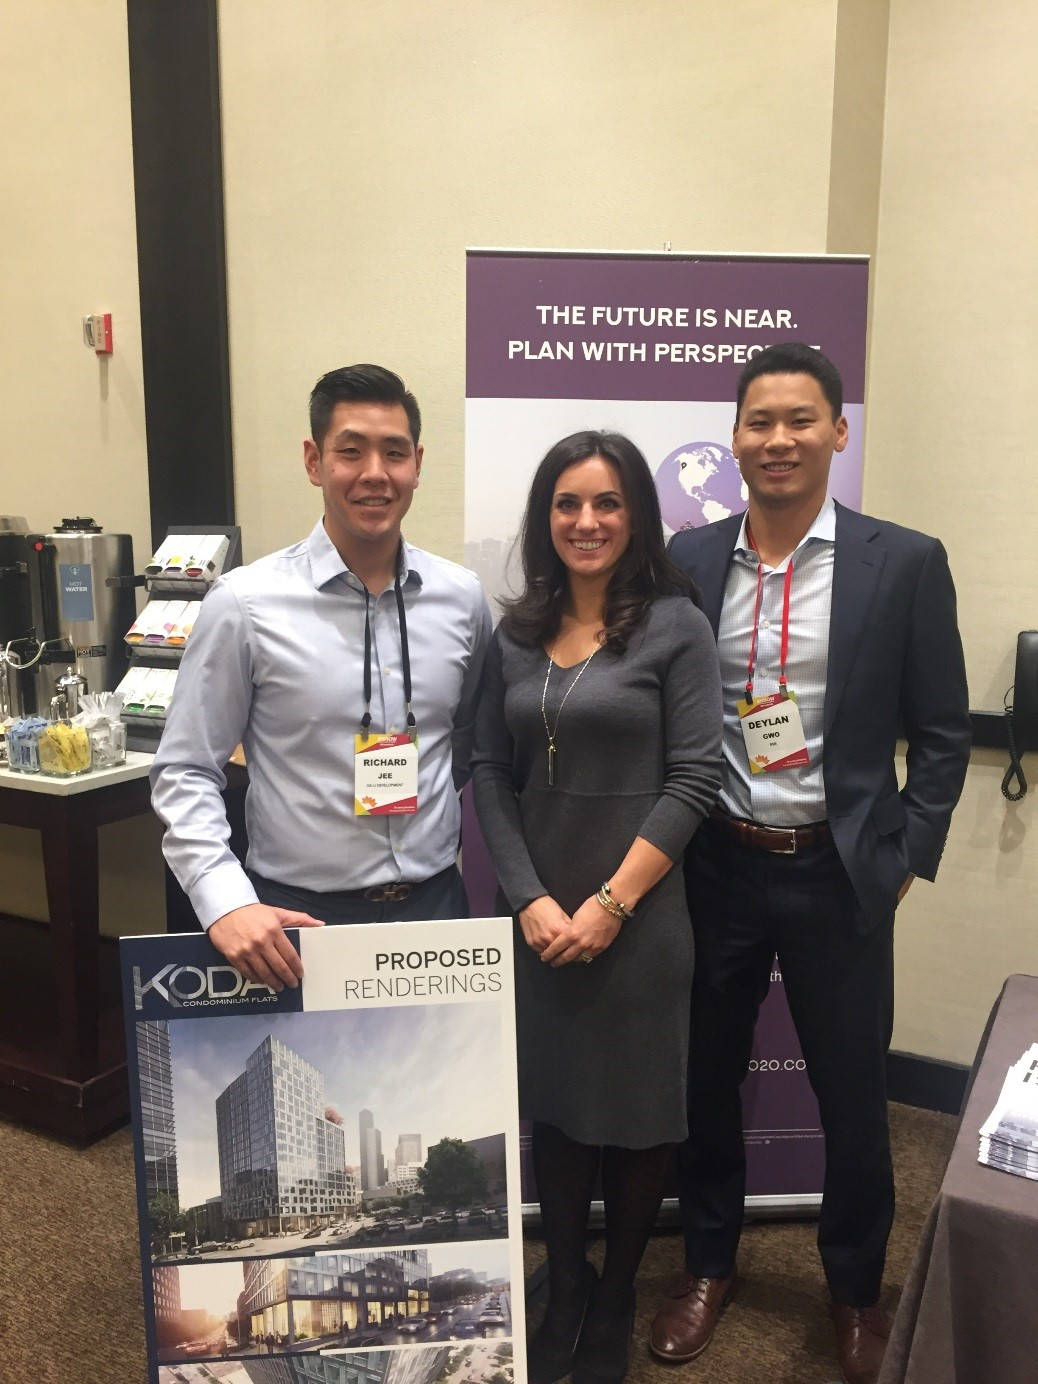 Richard Jee of Da-Li Development (left), Whitney Heffernan (RSIR), and Dehlan Gwo (RSIR) represented KODA Condominiums, NEXUS Seattle, and the FutureCast Forum at the Bisnow Multifamily event.